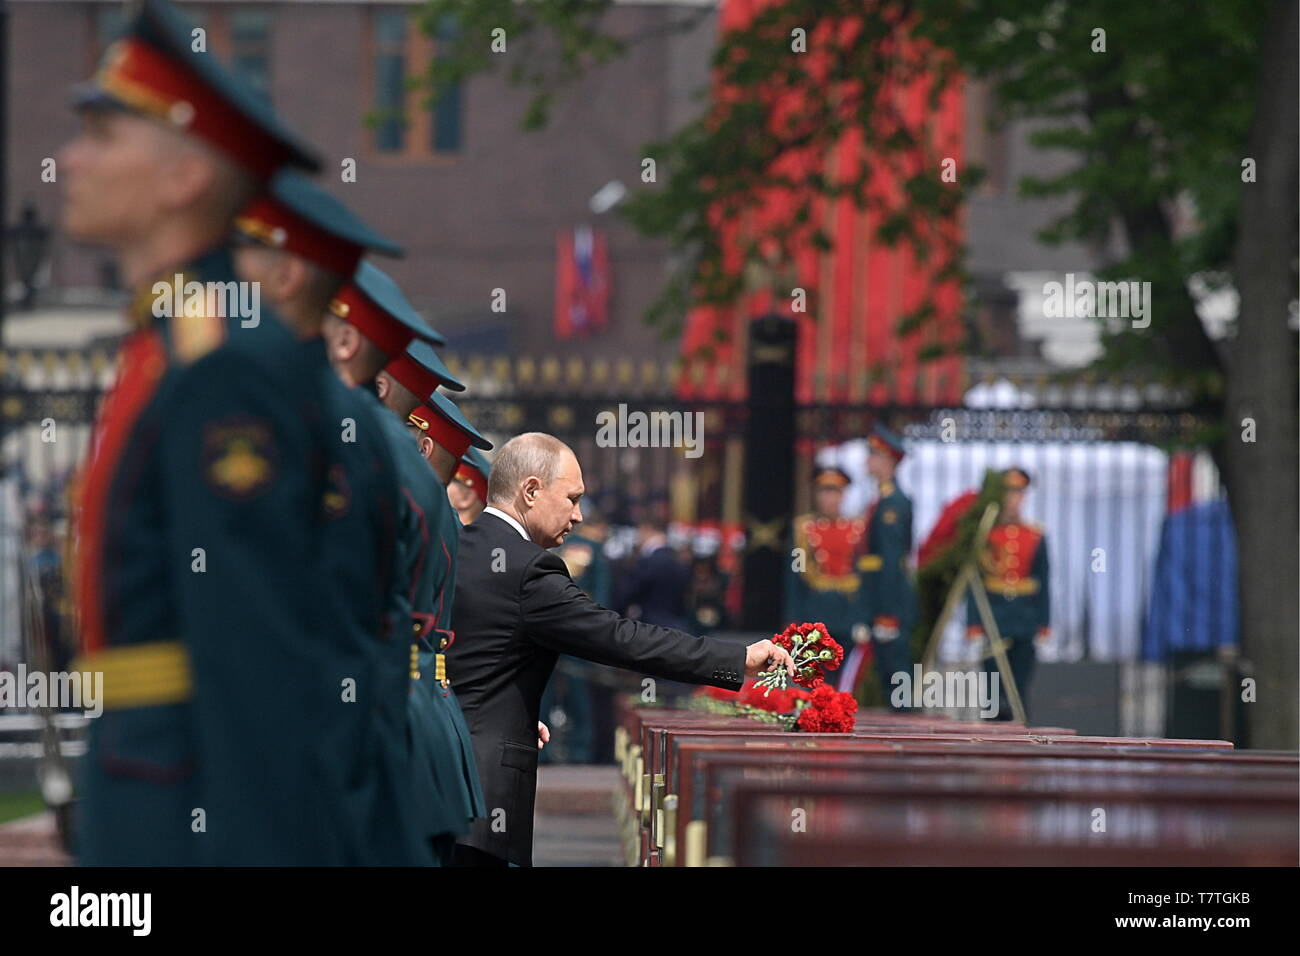 Moscow, Russia. 09th May, 2019. MOSCOW, RUSSIA - MAY 9, 2019: Russia's President Vladimir Putin during a ceremony to lay flowers at the Tomb of the Unknown Soldier by the Kremlin Wall during celebrations marking the 74th anniversary of the victory of the Soviet Red Army over Nazi Germany in the Great Patriotic War of 1941-45, the Eastern Front of the Second World War. Alexei Druzhinin/Russian Presidential Press and Information Office/TASS Credit: ITAR-TASS News Agency/Alamy Live News - Stock Image